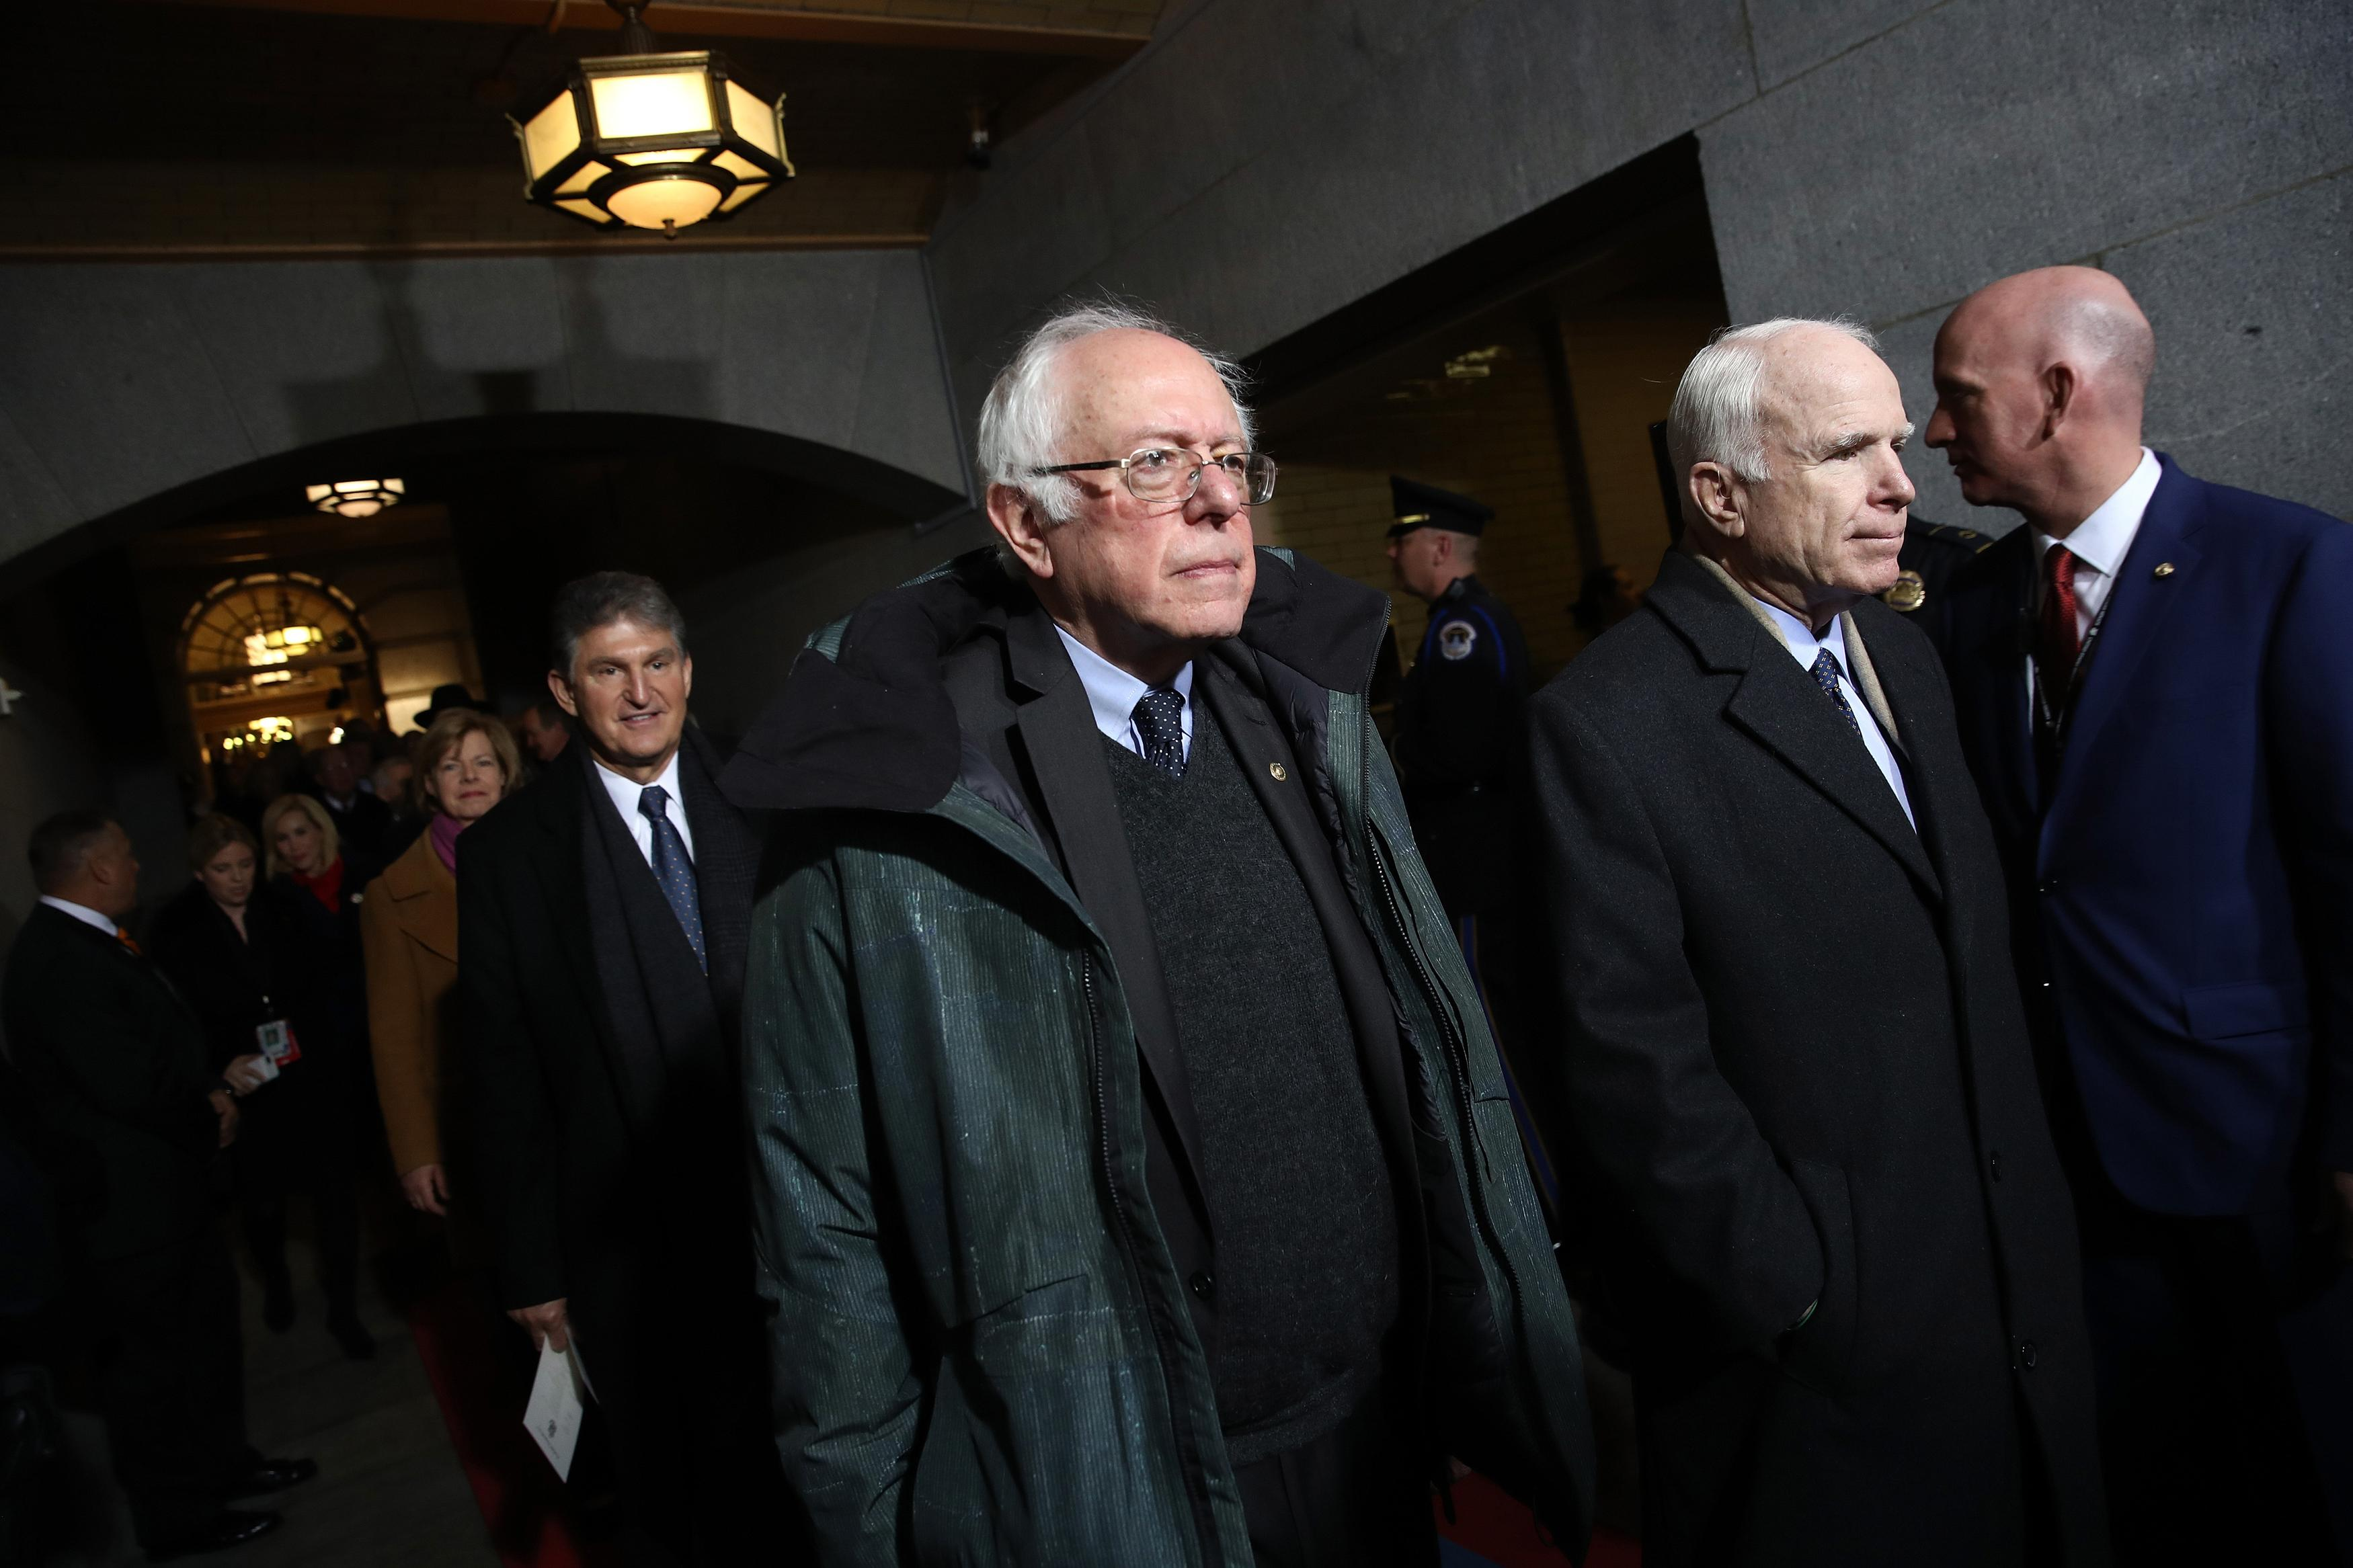 Bernie Sanders will Face Donald Trump in 2020 Election, Democrats Say